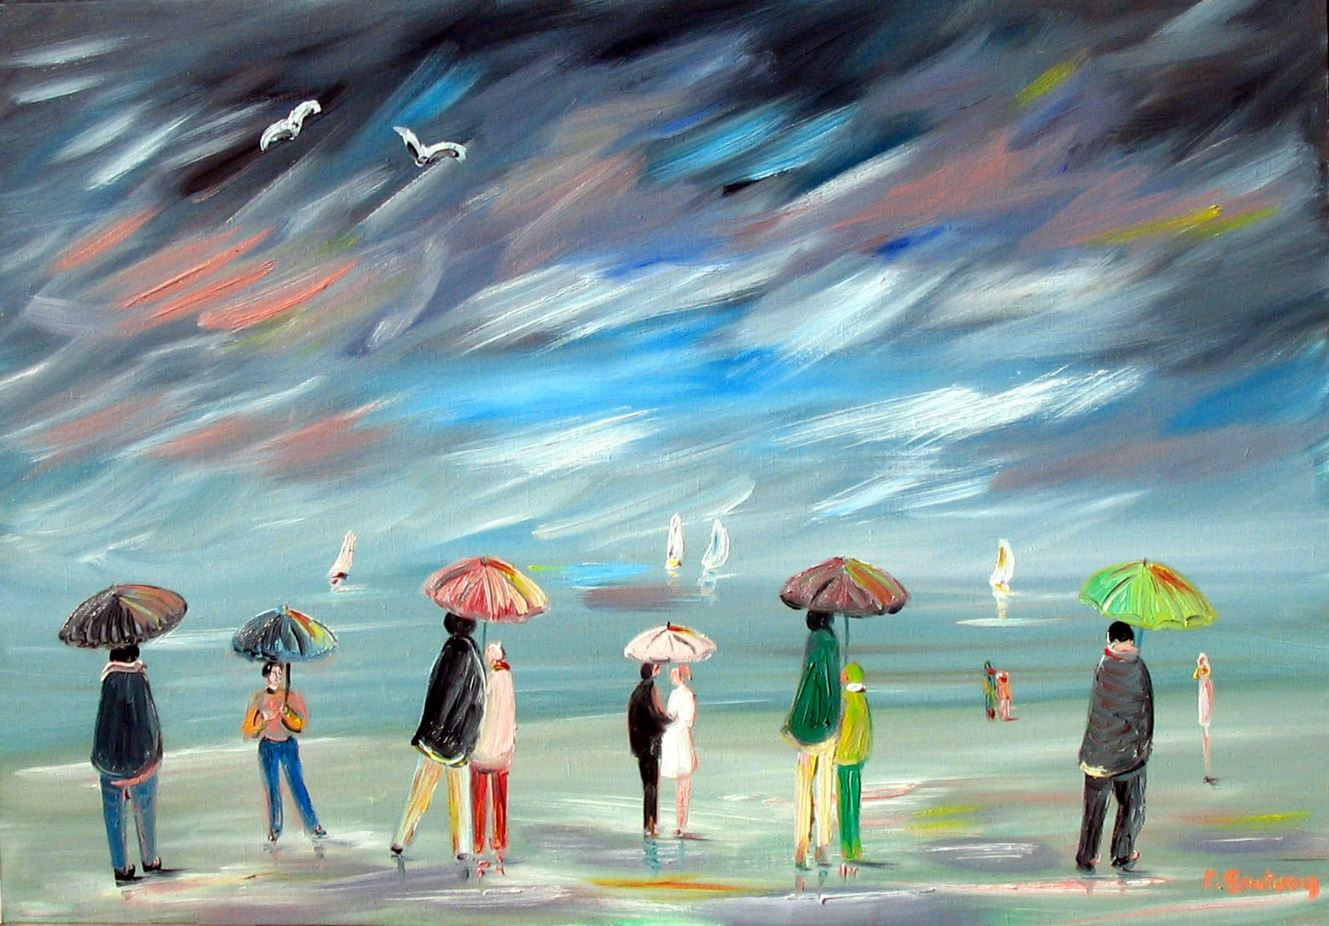 Artwork for sale René Boutang Collonges la rouge Multicoloured umbrellas